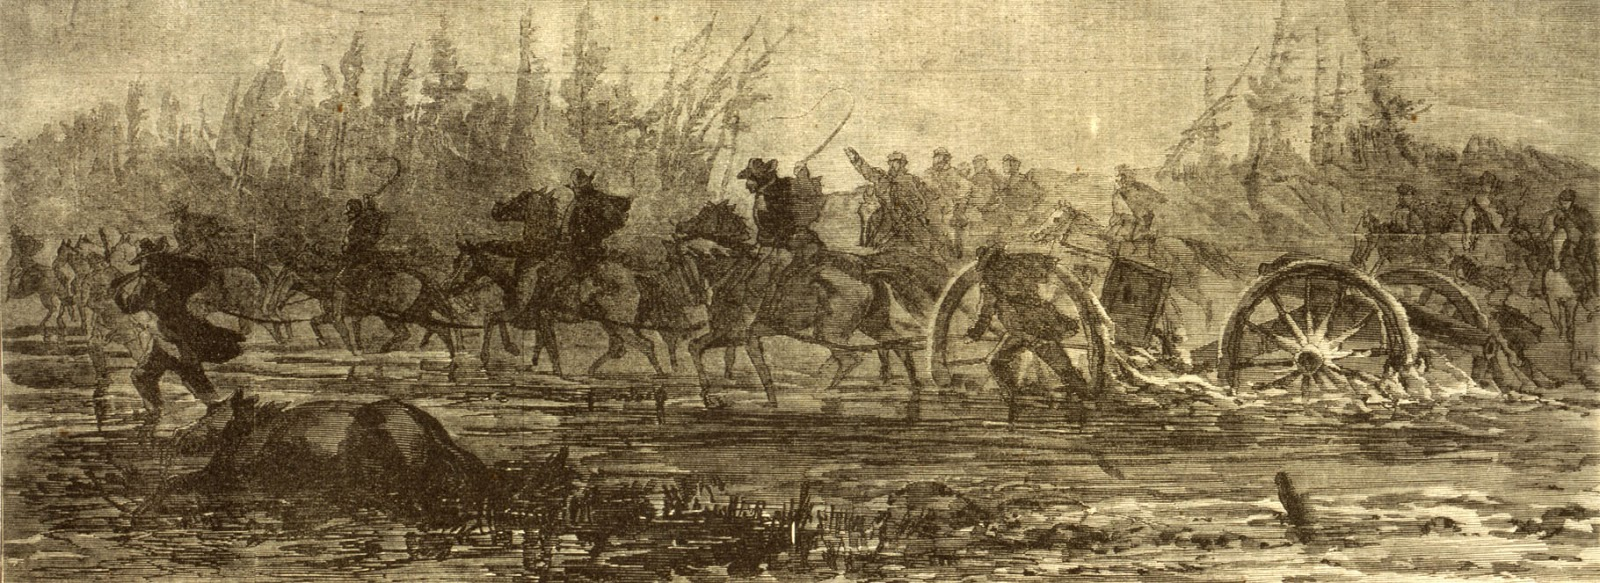 waud alfred r alfred rudolph 1828 1891 artist dragging artillery through the mud 1 print wood engraving 35 x 13 cm image 1864 march